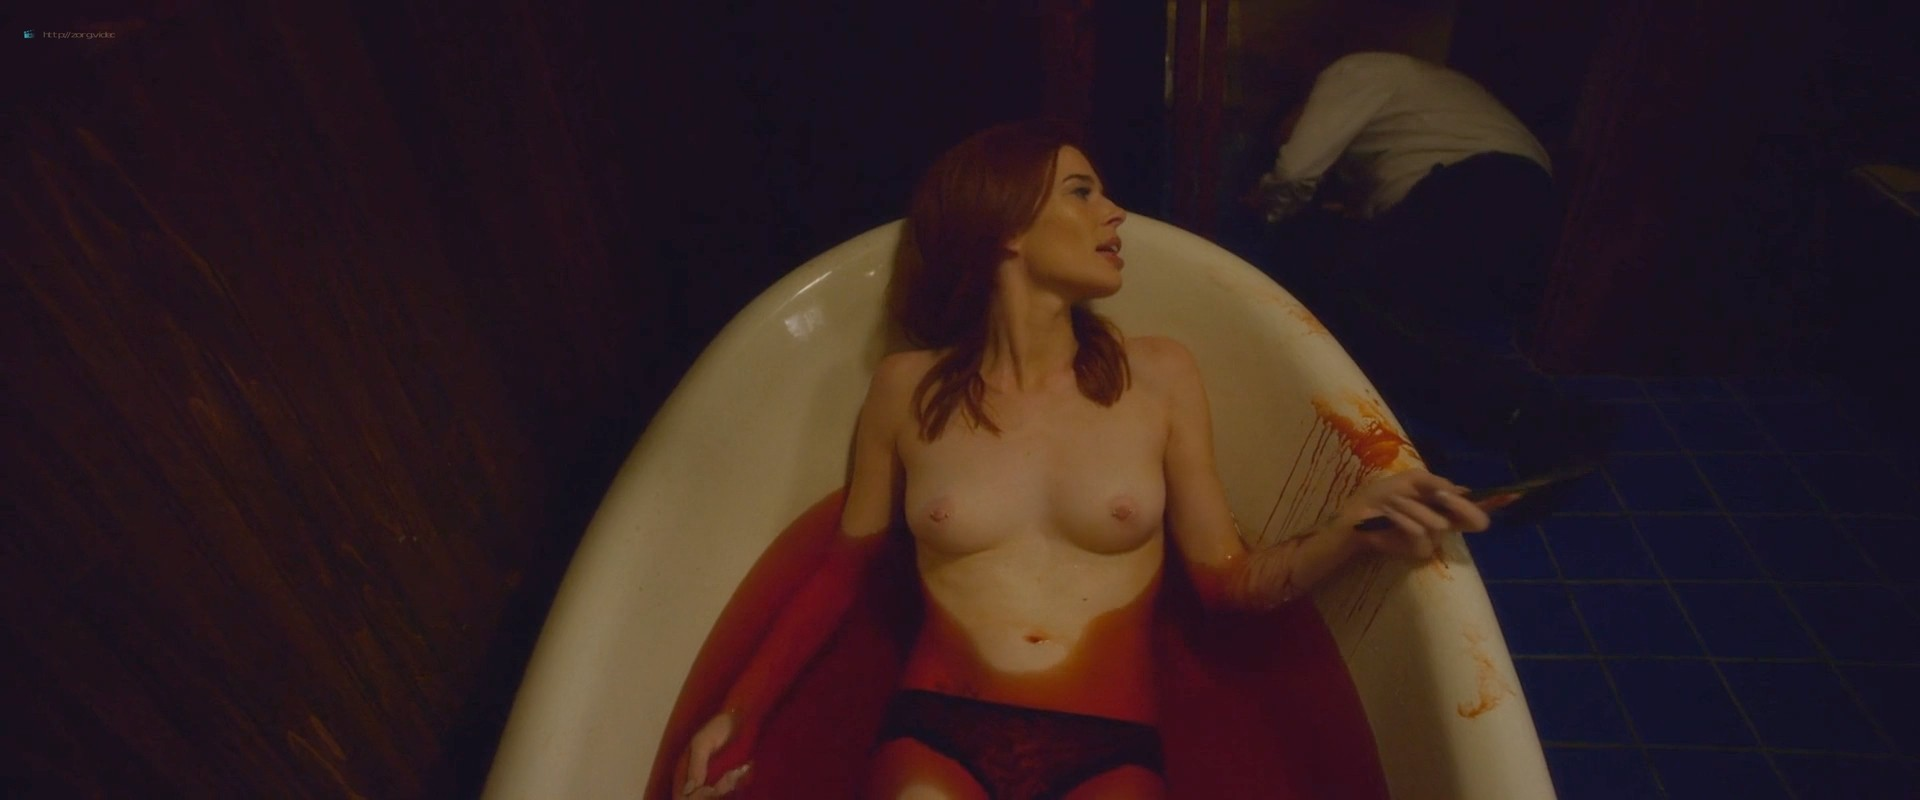 Chloe Dykstra nude topless and hot Ana Foxx and others hot - Diminuendo (2018) HD 1080p Web (3)